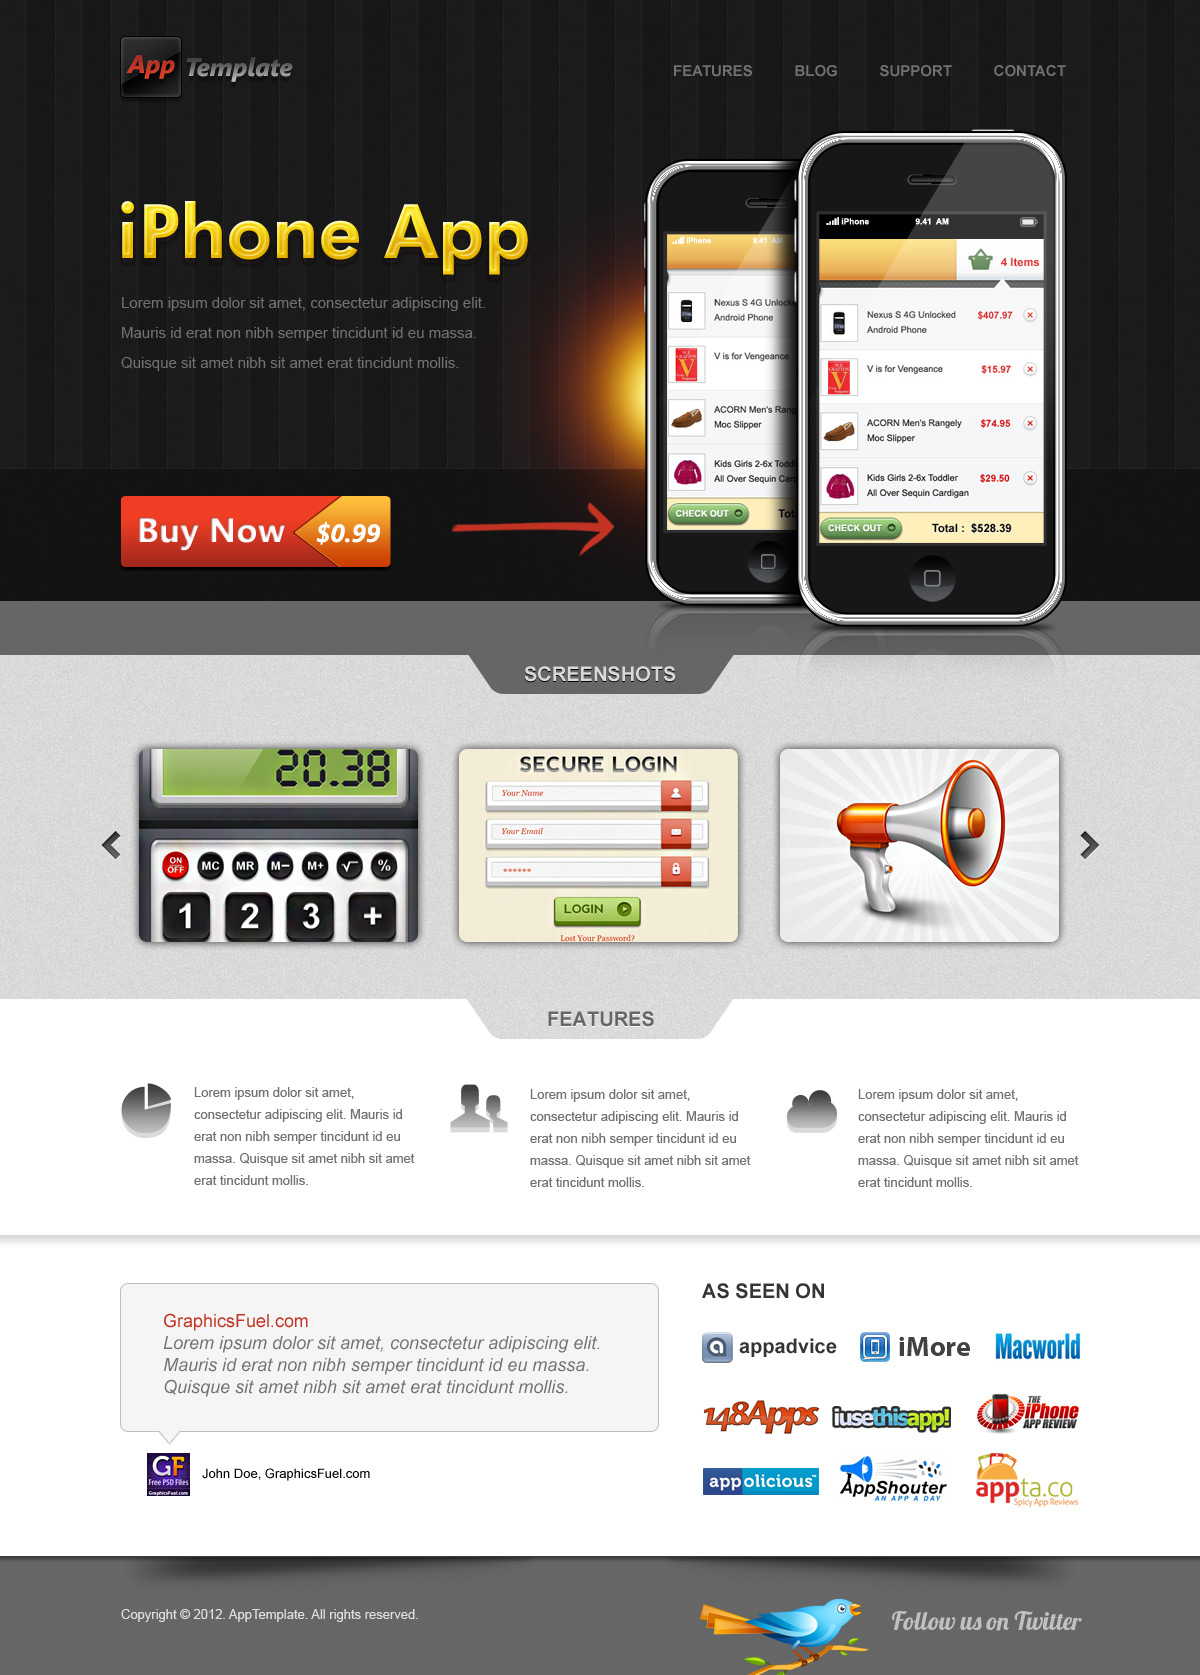 iphone app website template psd graphicsfuel. Black Bedroom Furniture Sets. Home Design Ideas